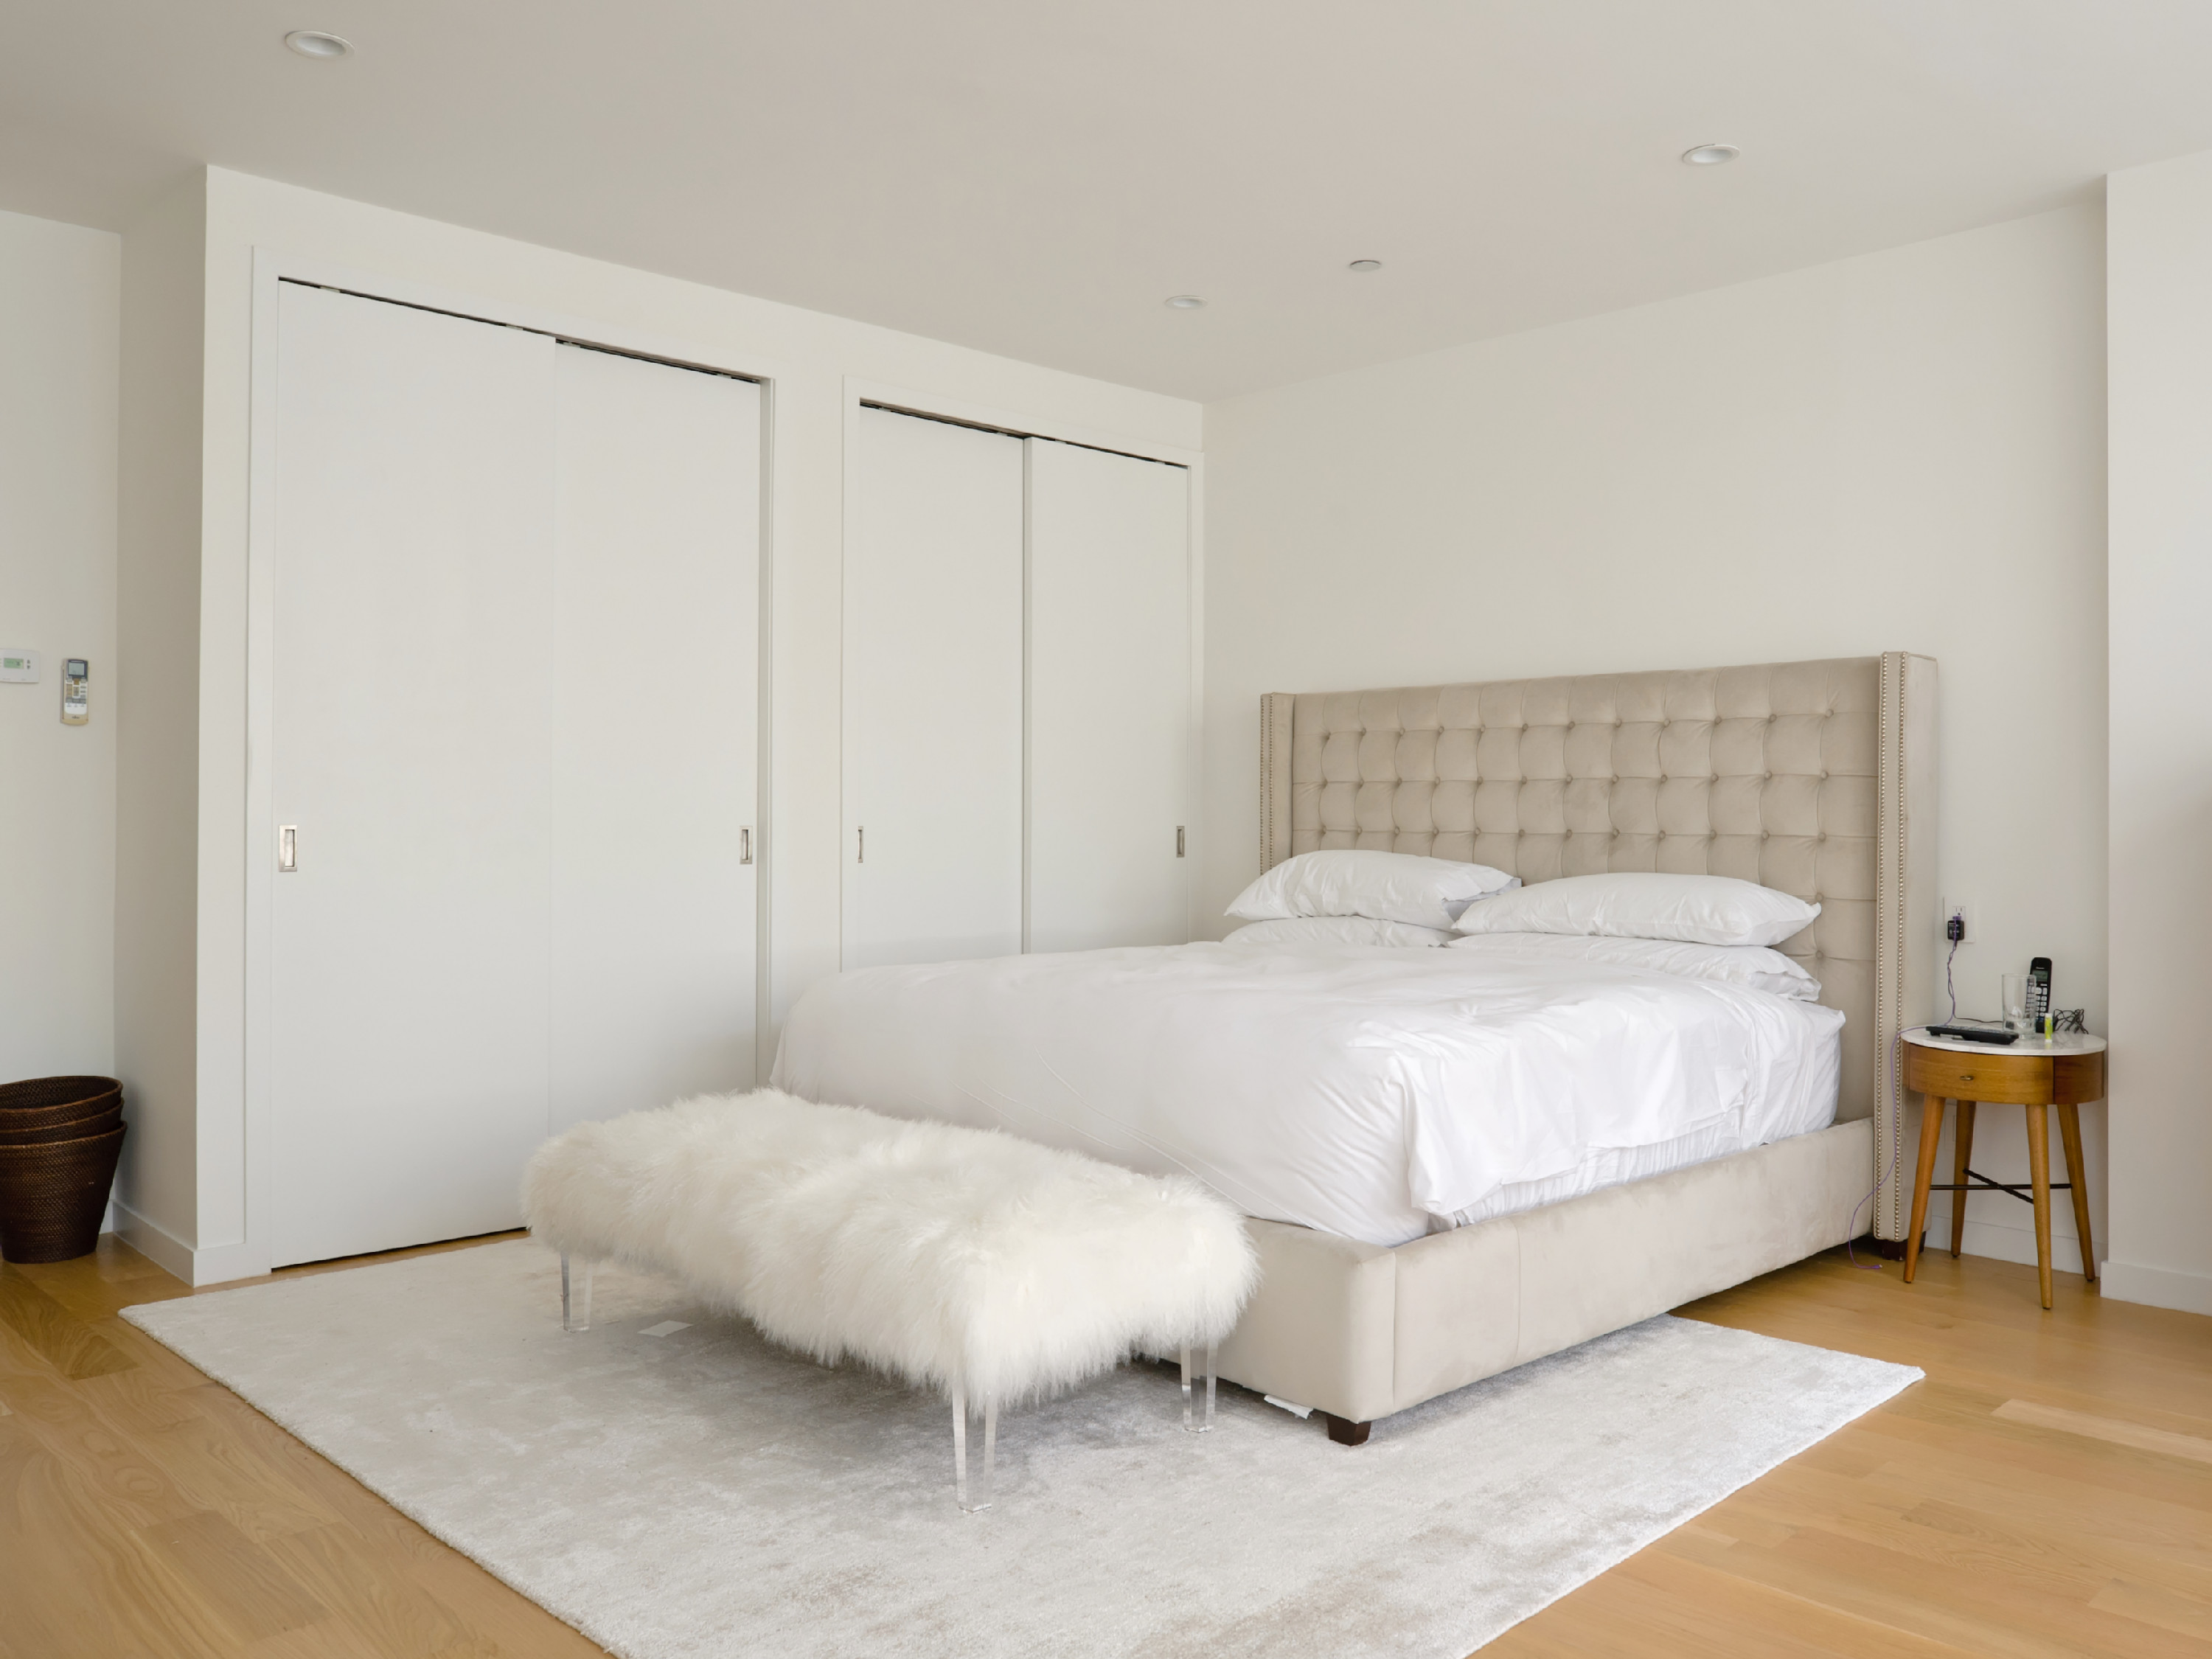 Residence Images